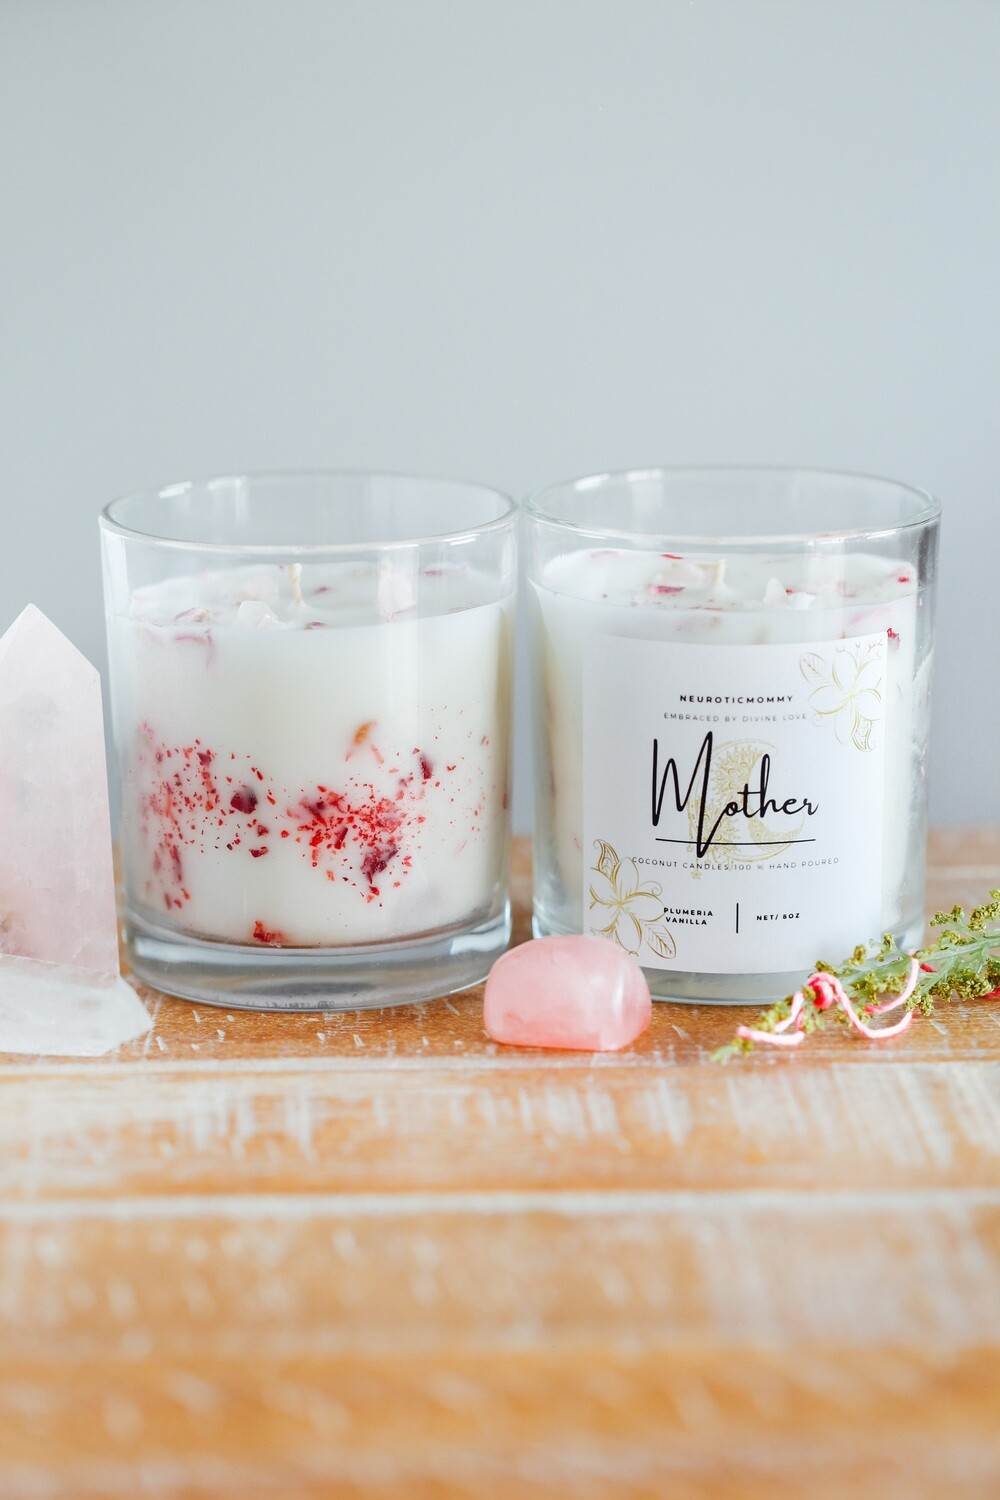 Mother - Divine Love Candle